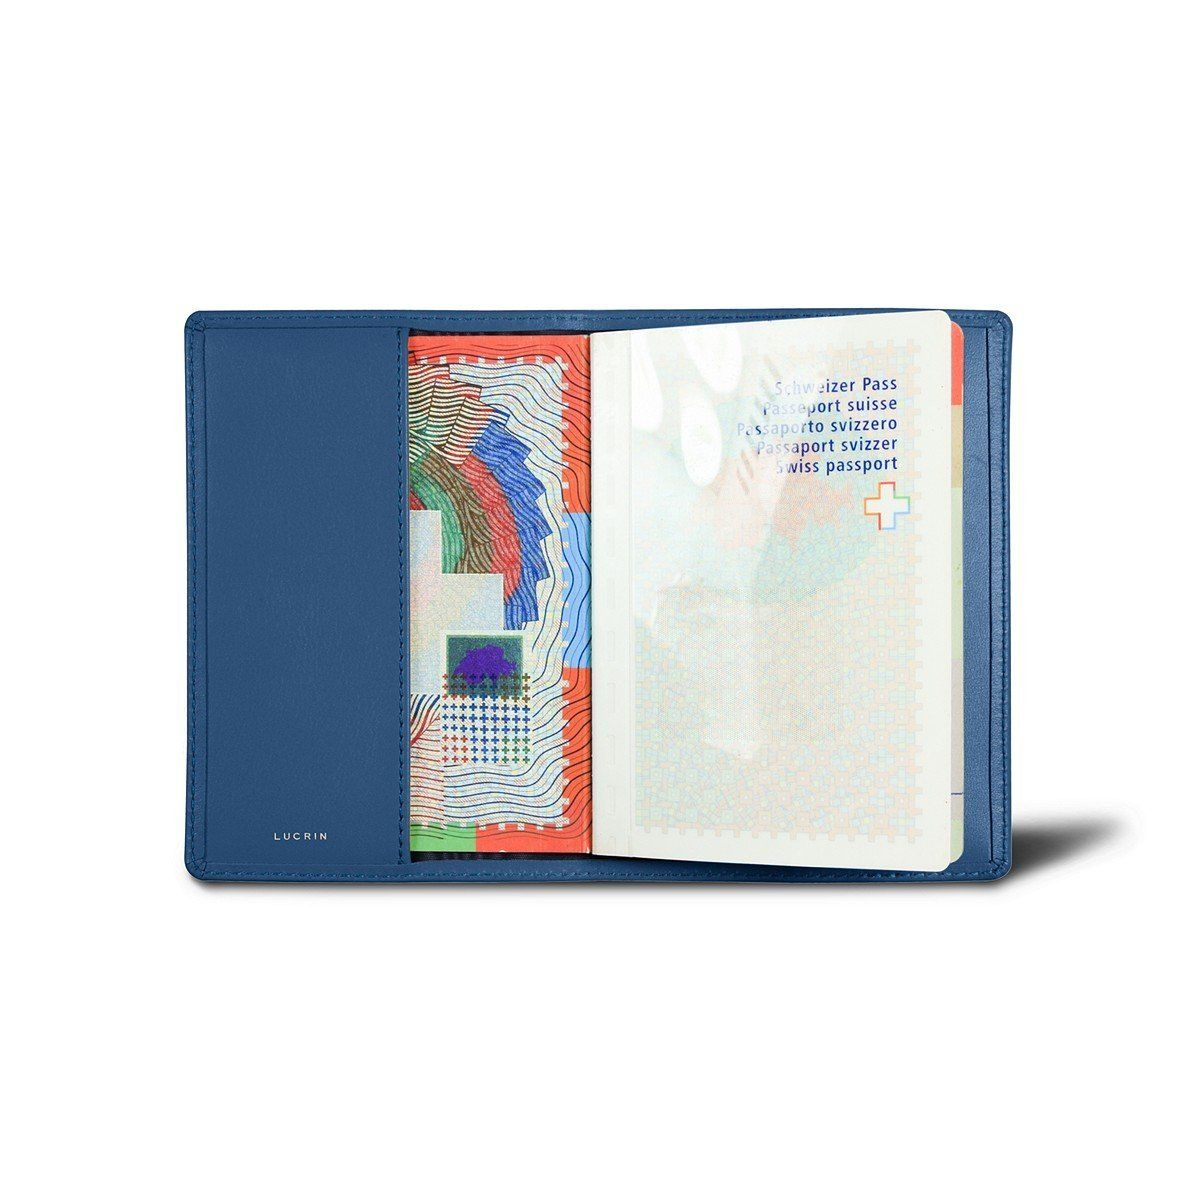 Lucrin genuine leather usa passport cover royal blue